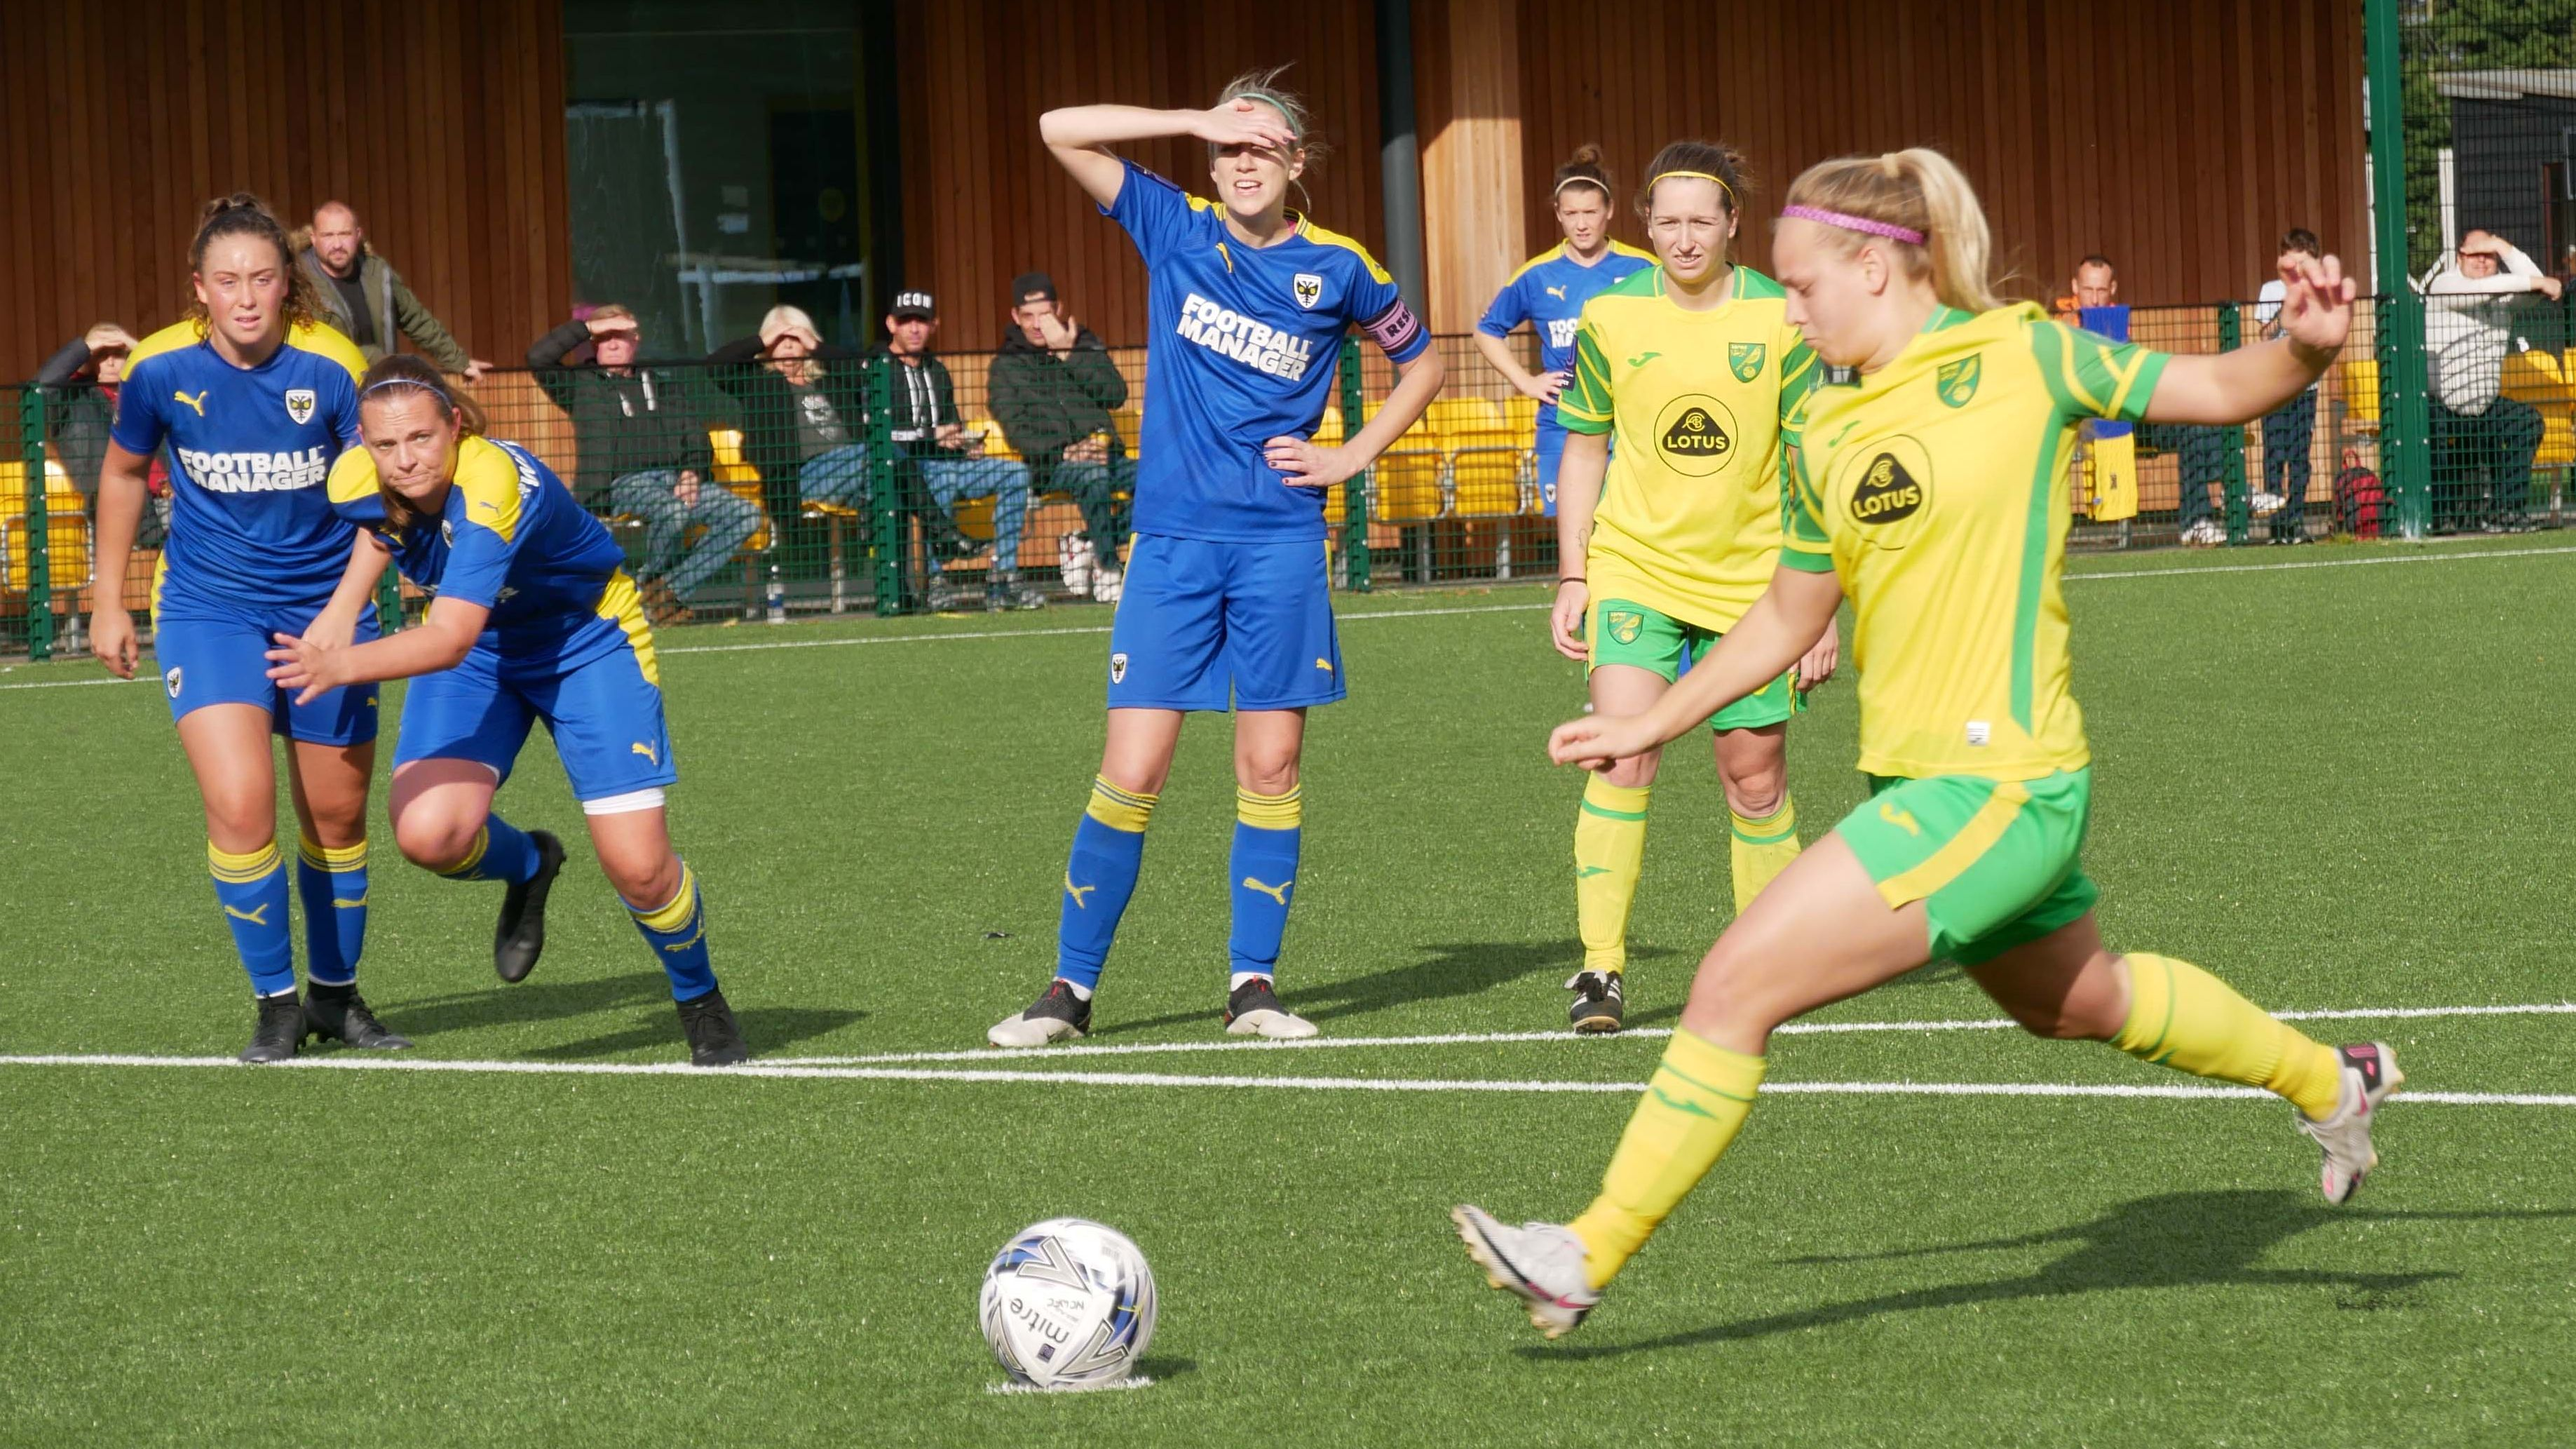 norwich-city-women-beaten-in-plate-competition-by-afc-wimbledon